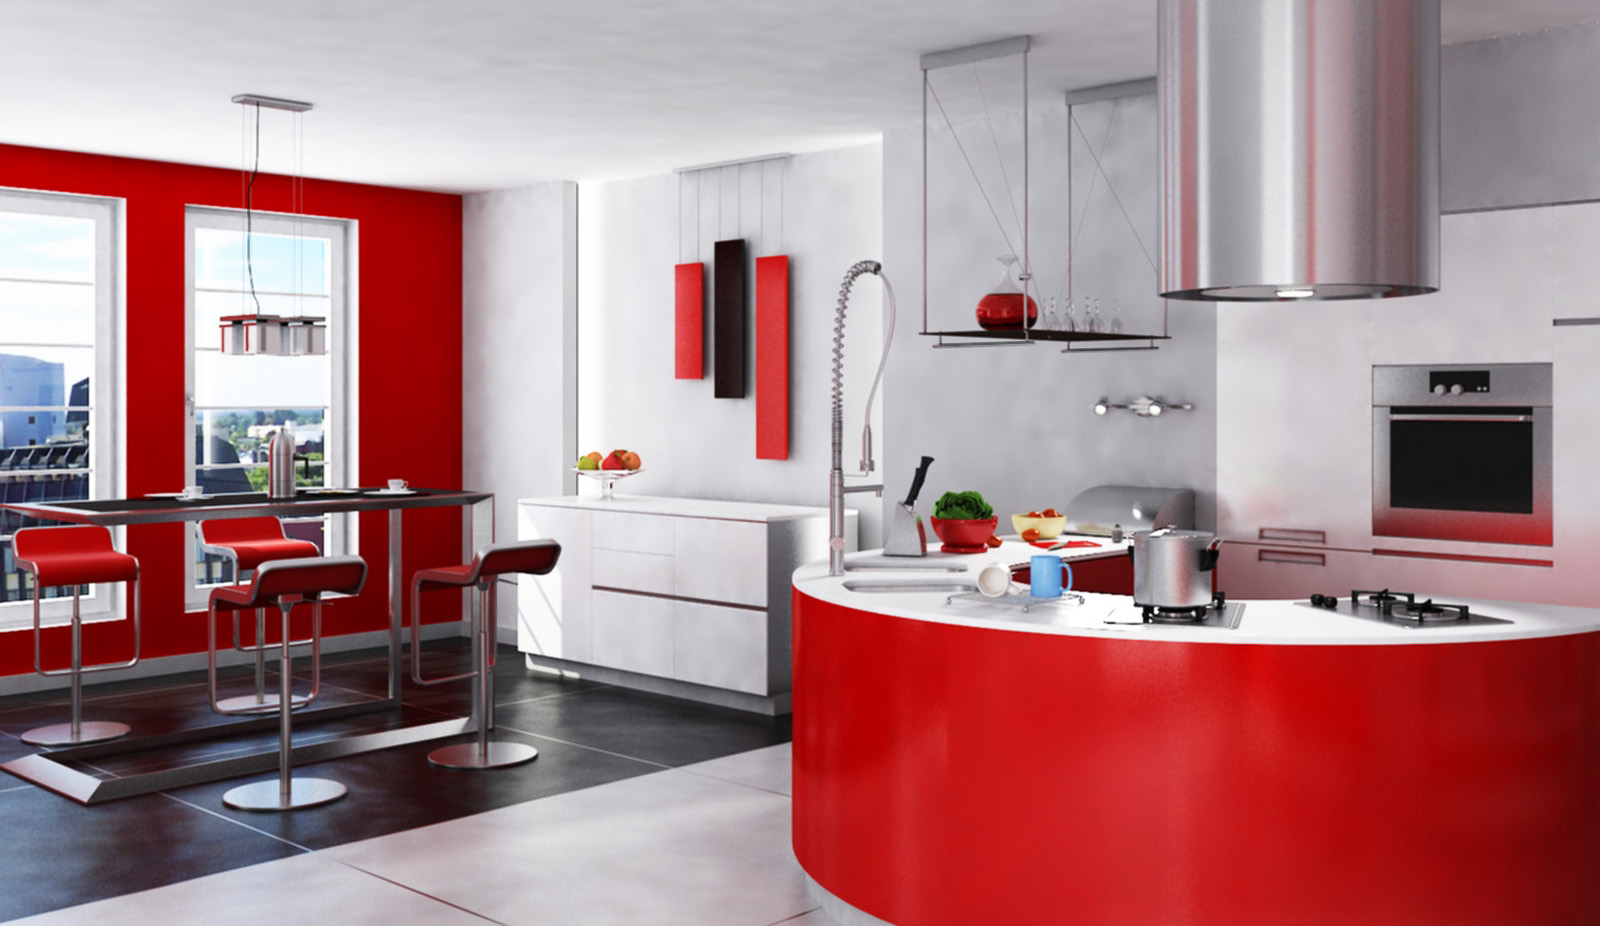 kitchen-1e.jpg